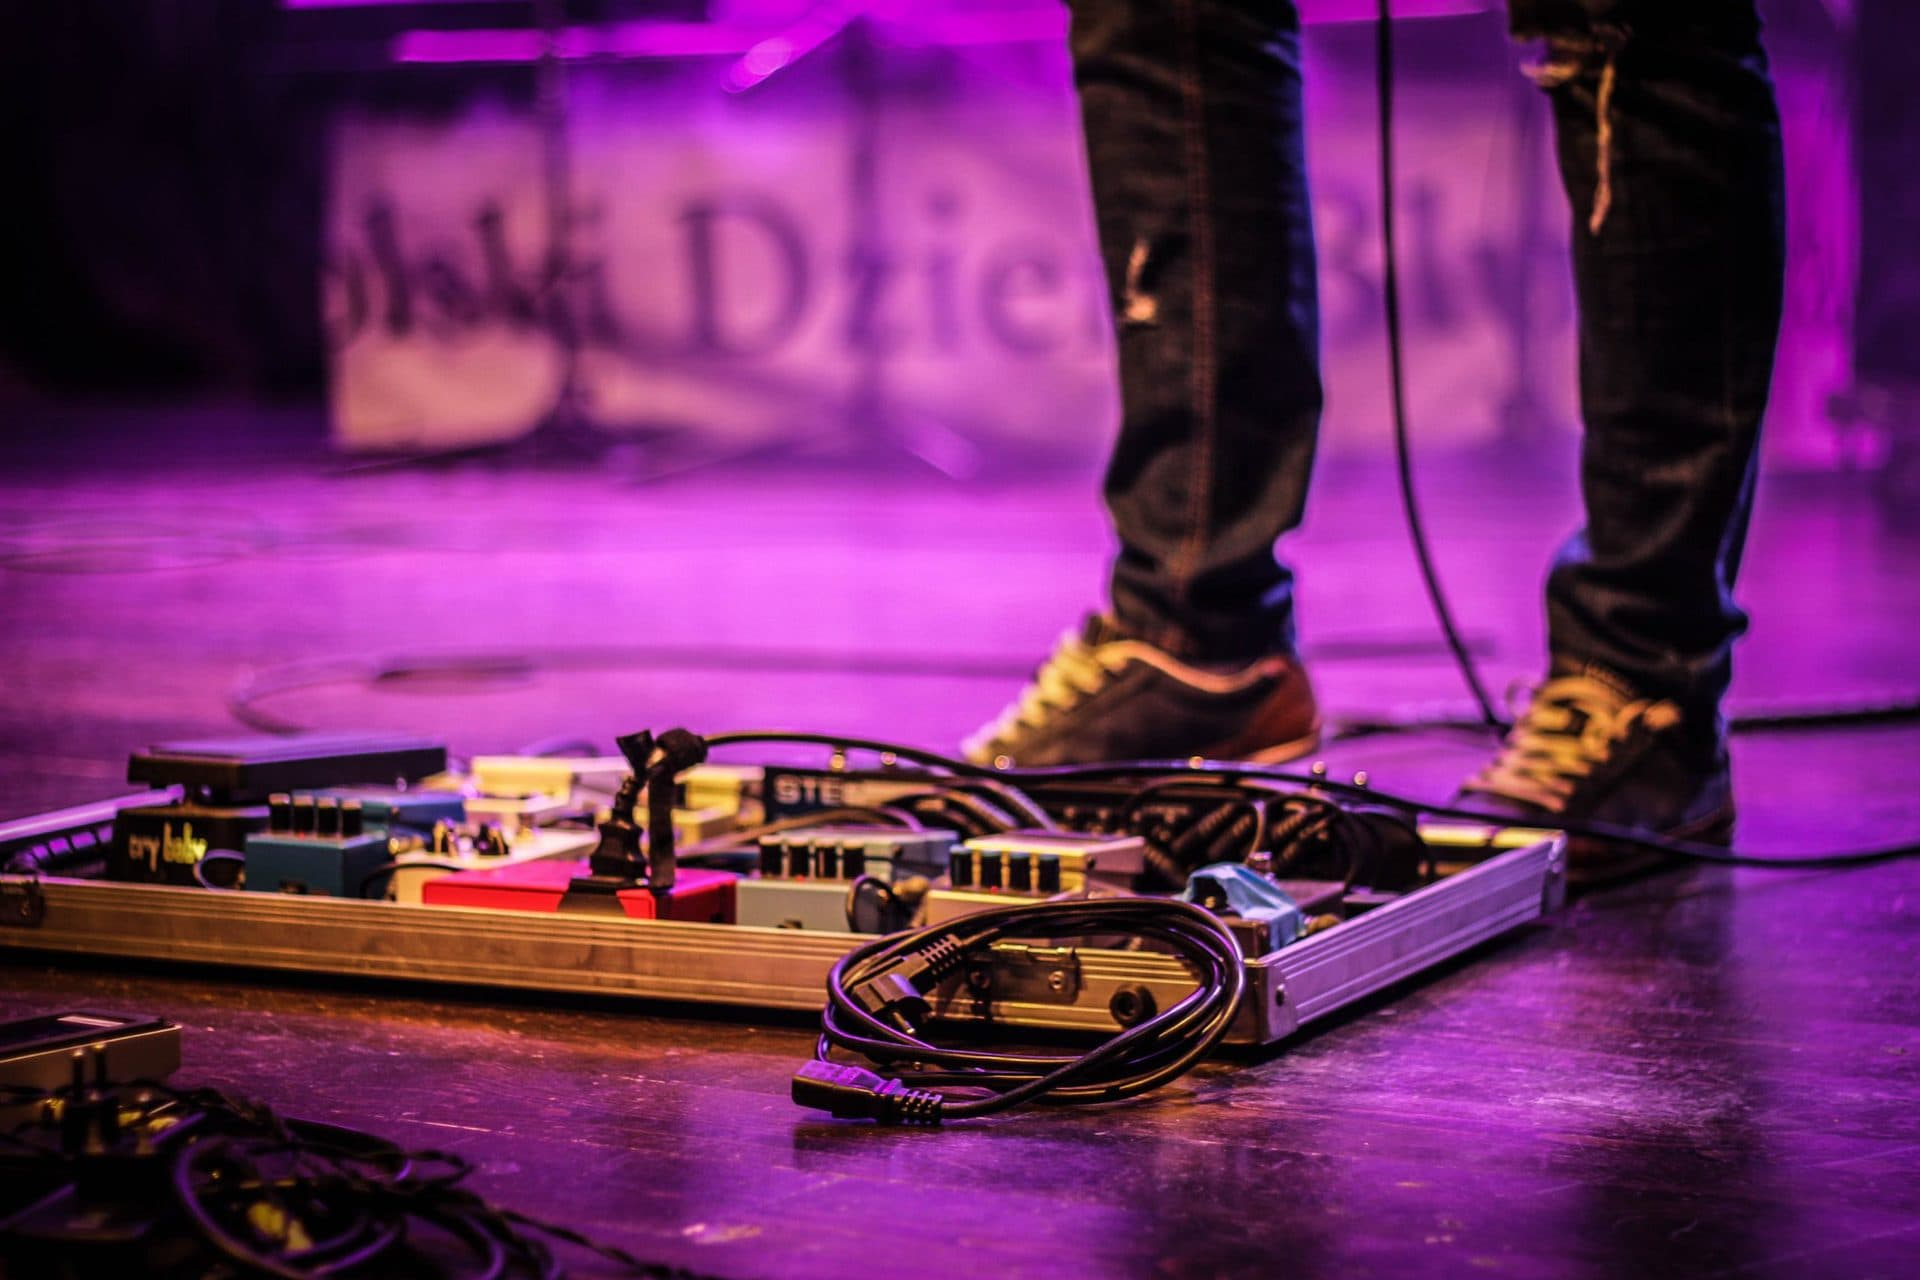 Wah Pedal on Guitar Pedalboard